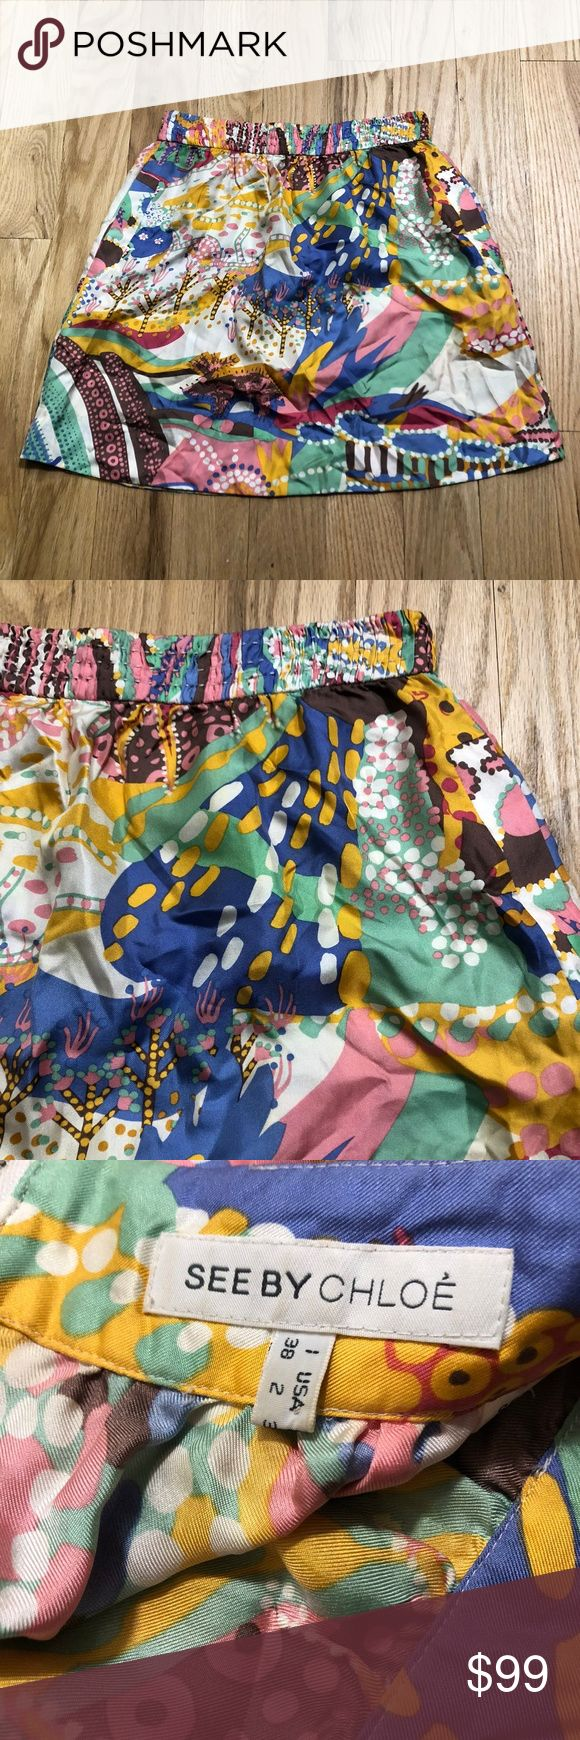 """See by Chloe Silk Abstract Mini Skirt See by Chloe mini skirt. 100% silk. Abstrat multicolor print all over. Elastic waistband. Exposed back zipper. Two hip pockets. Size 2. Approx 13.25"""" across waist, 17.5"""" long.  No signs of wear. EUC.  No trades. Reasonable offers always welcomes! See by Chloe Skirts Mini"""